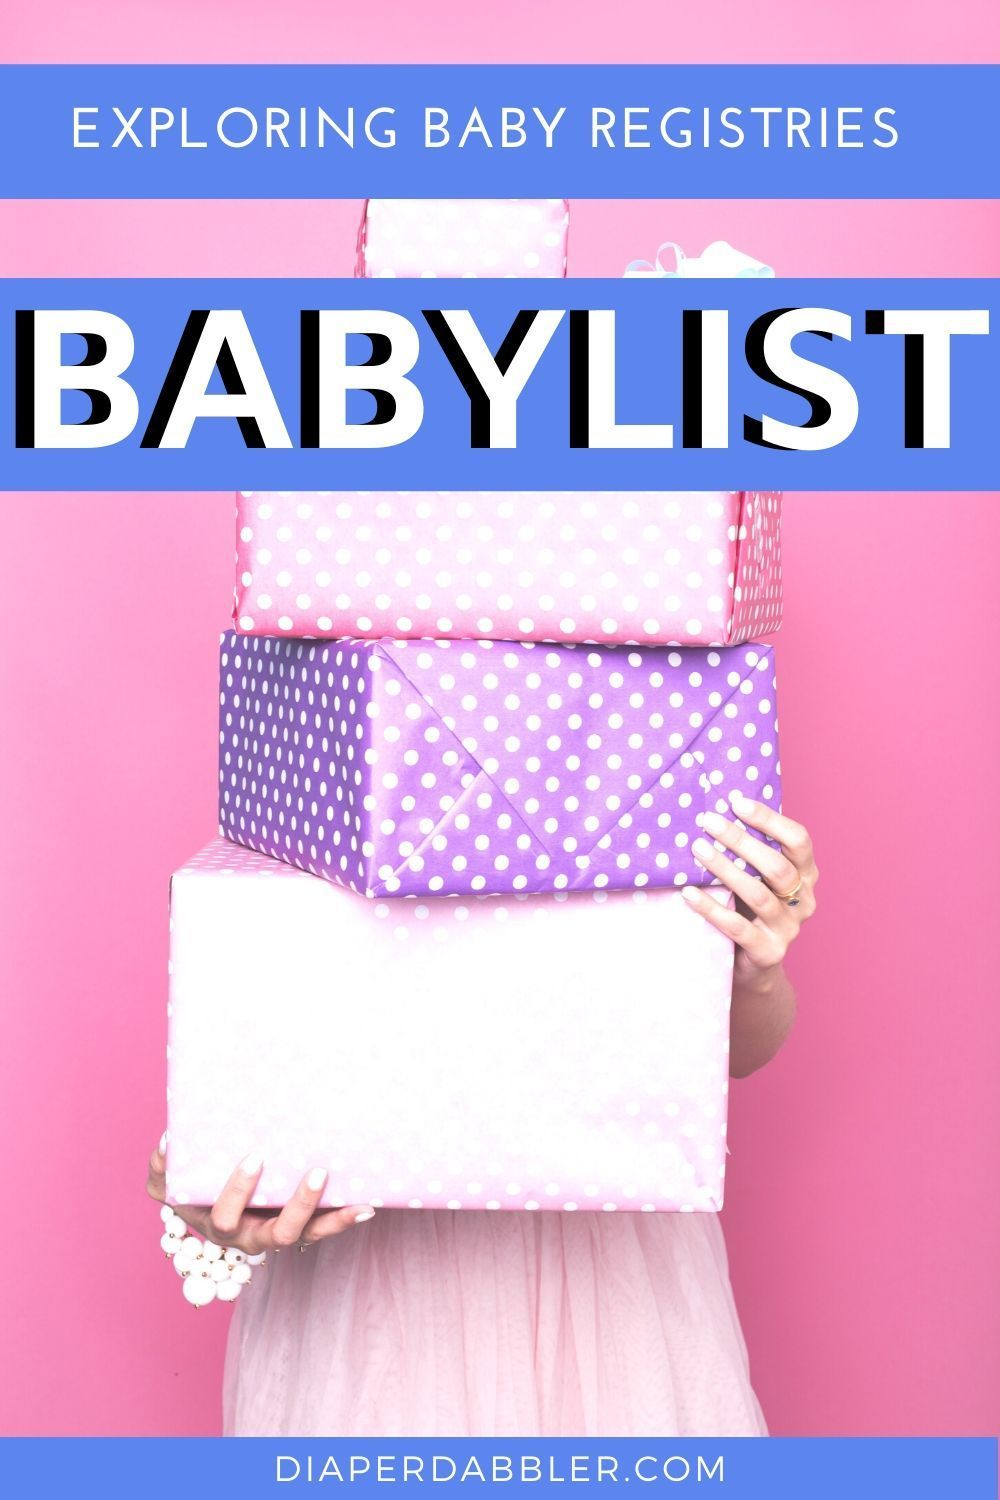 Exploring Baby Registries: Babylist Comparing the baby registries to help you find the right one for your baby shower. PLUS step-by-step instructions how to add your favorite gifts from anywhere online to your Babylist registry. #babyregistry #newmom #babyshower